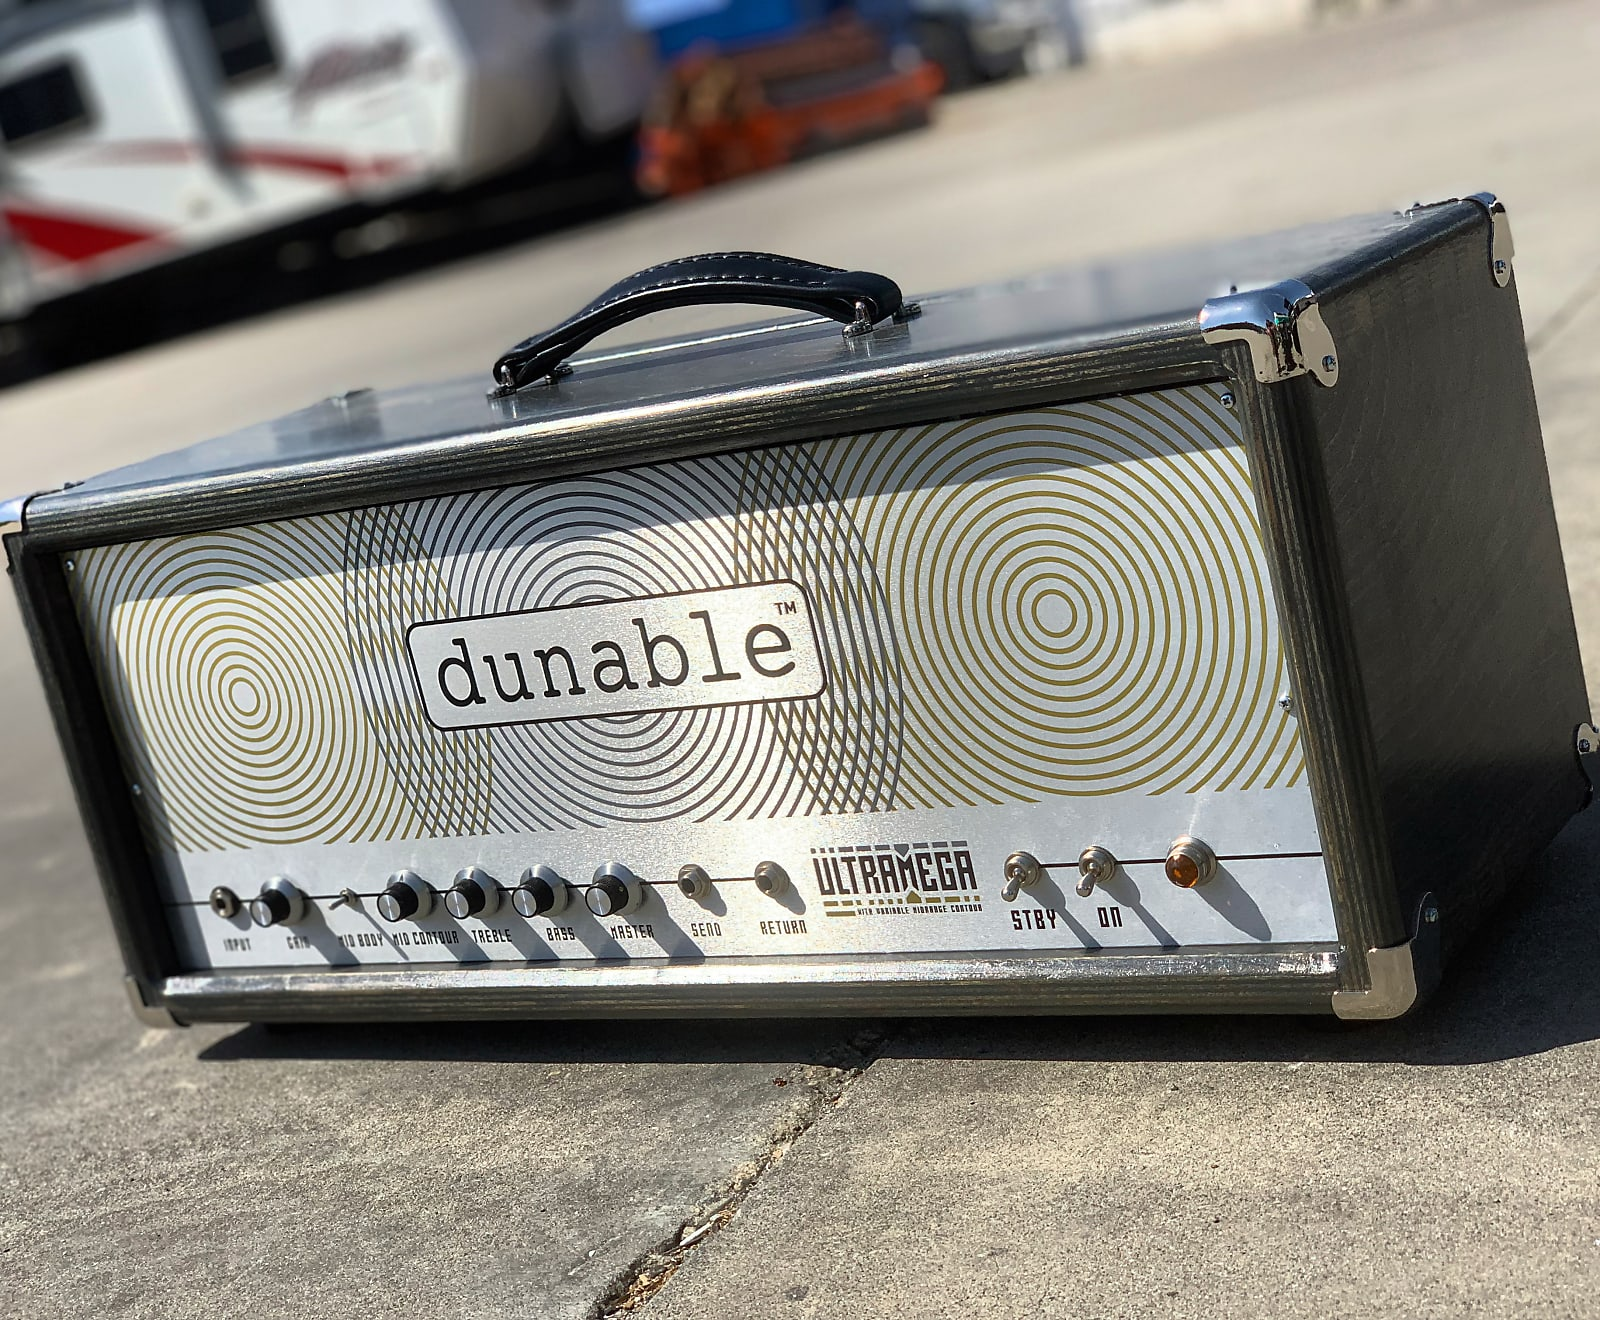 Dunable Ultramega Amplifier 2019 black stain